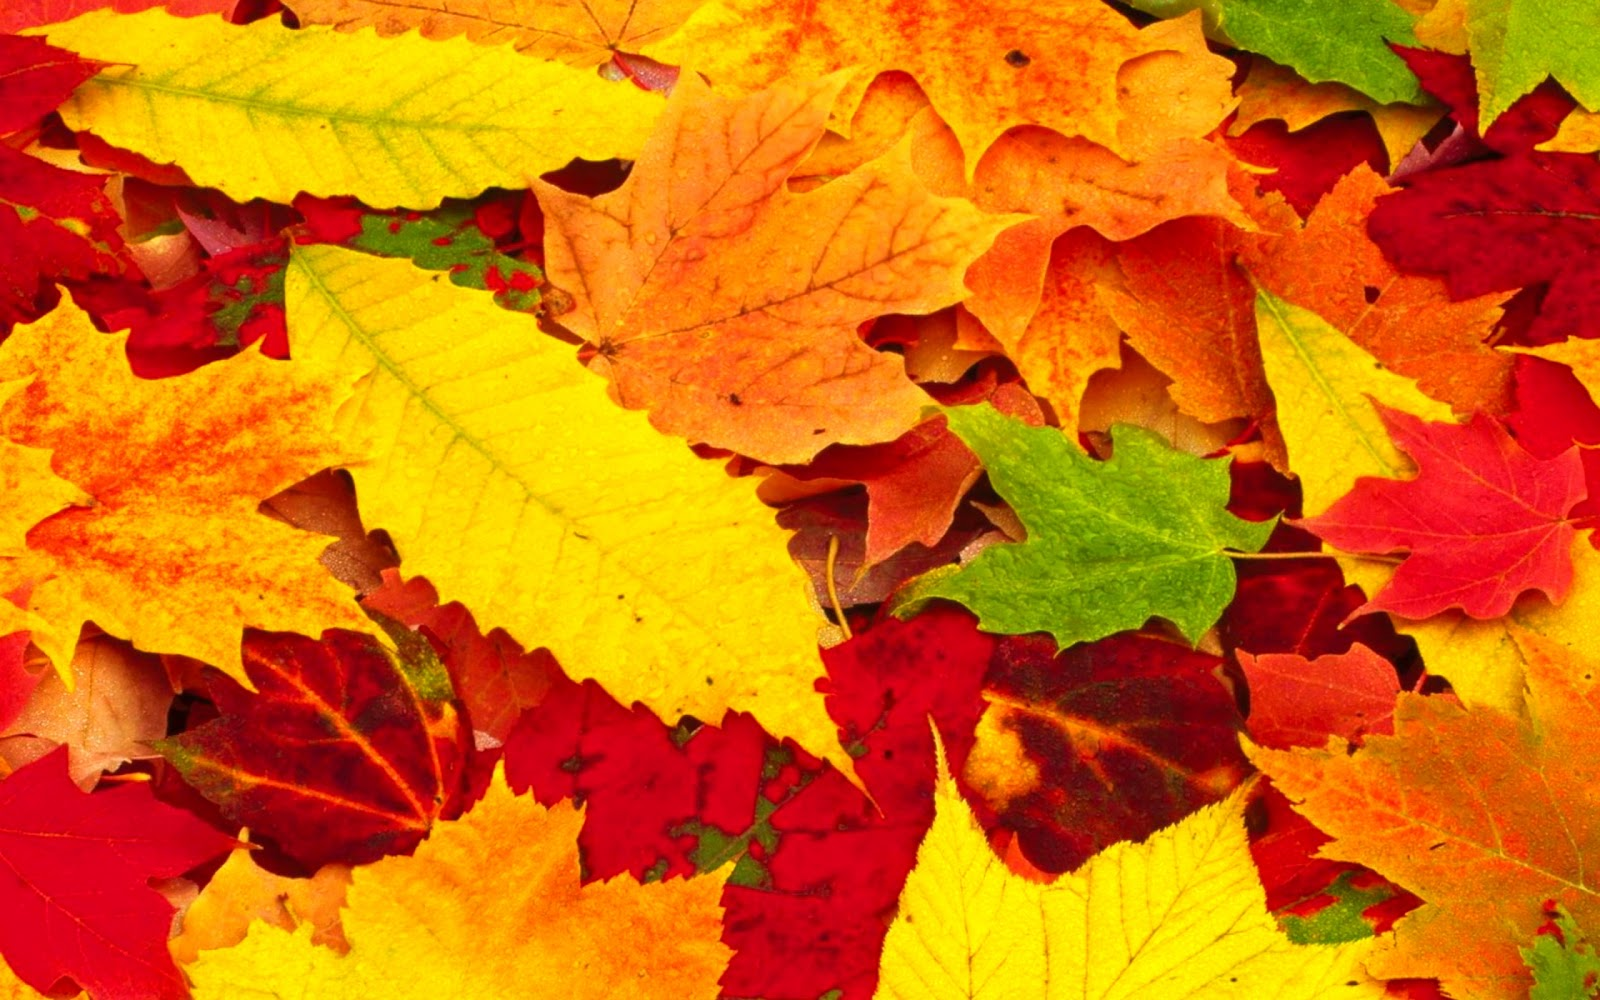 Red Autumn Leaves Wallpapers hd 1600x1000